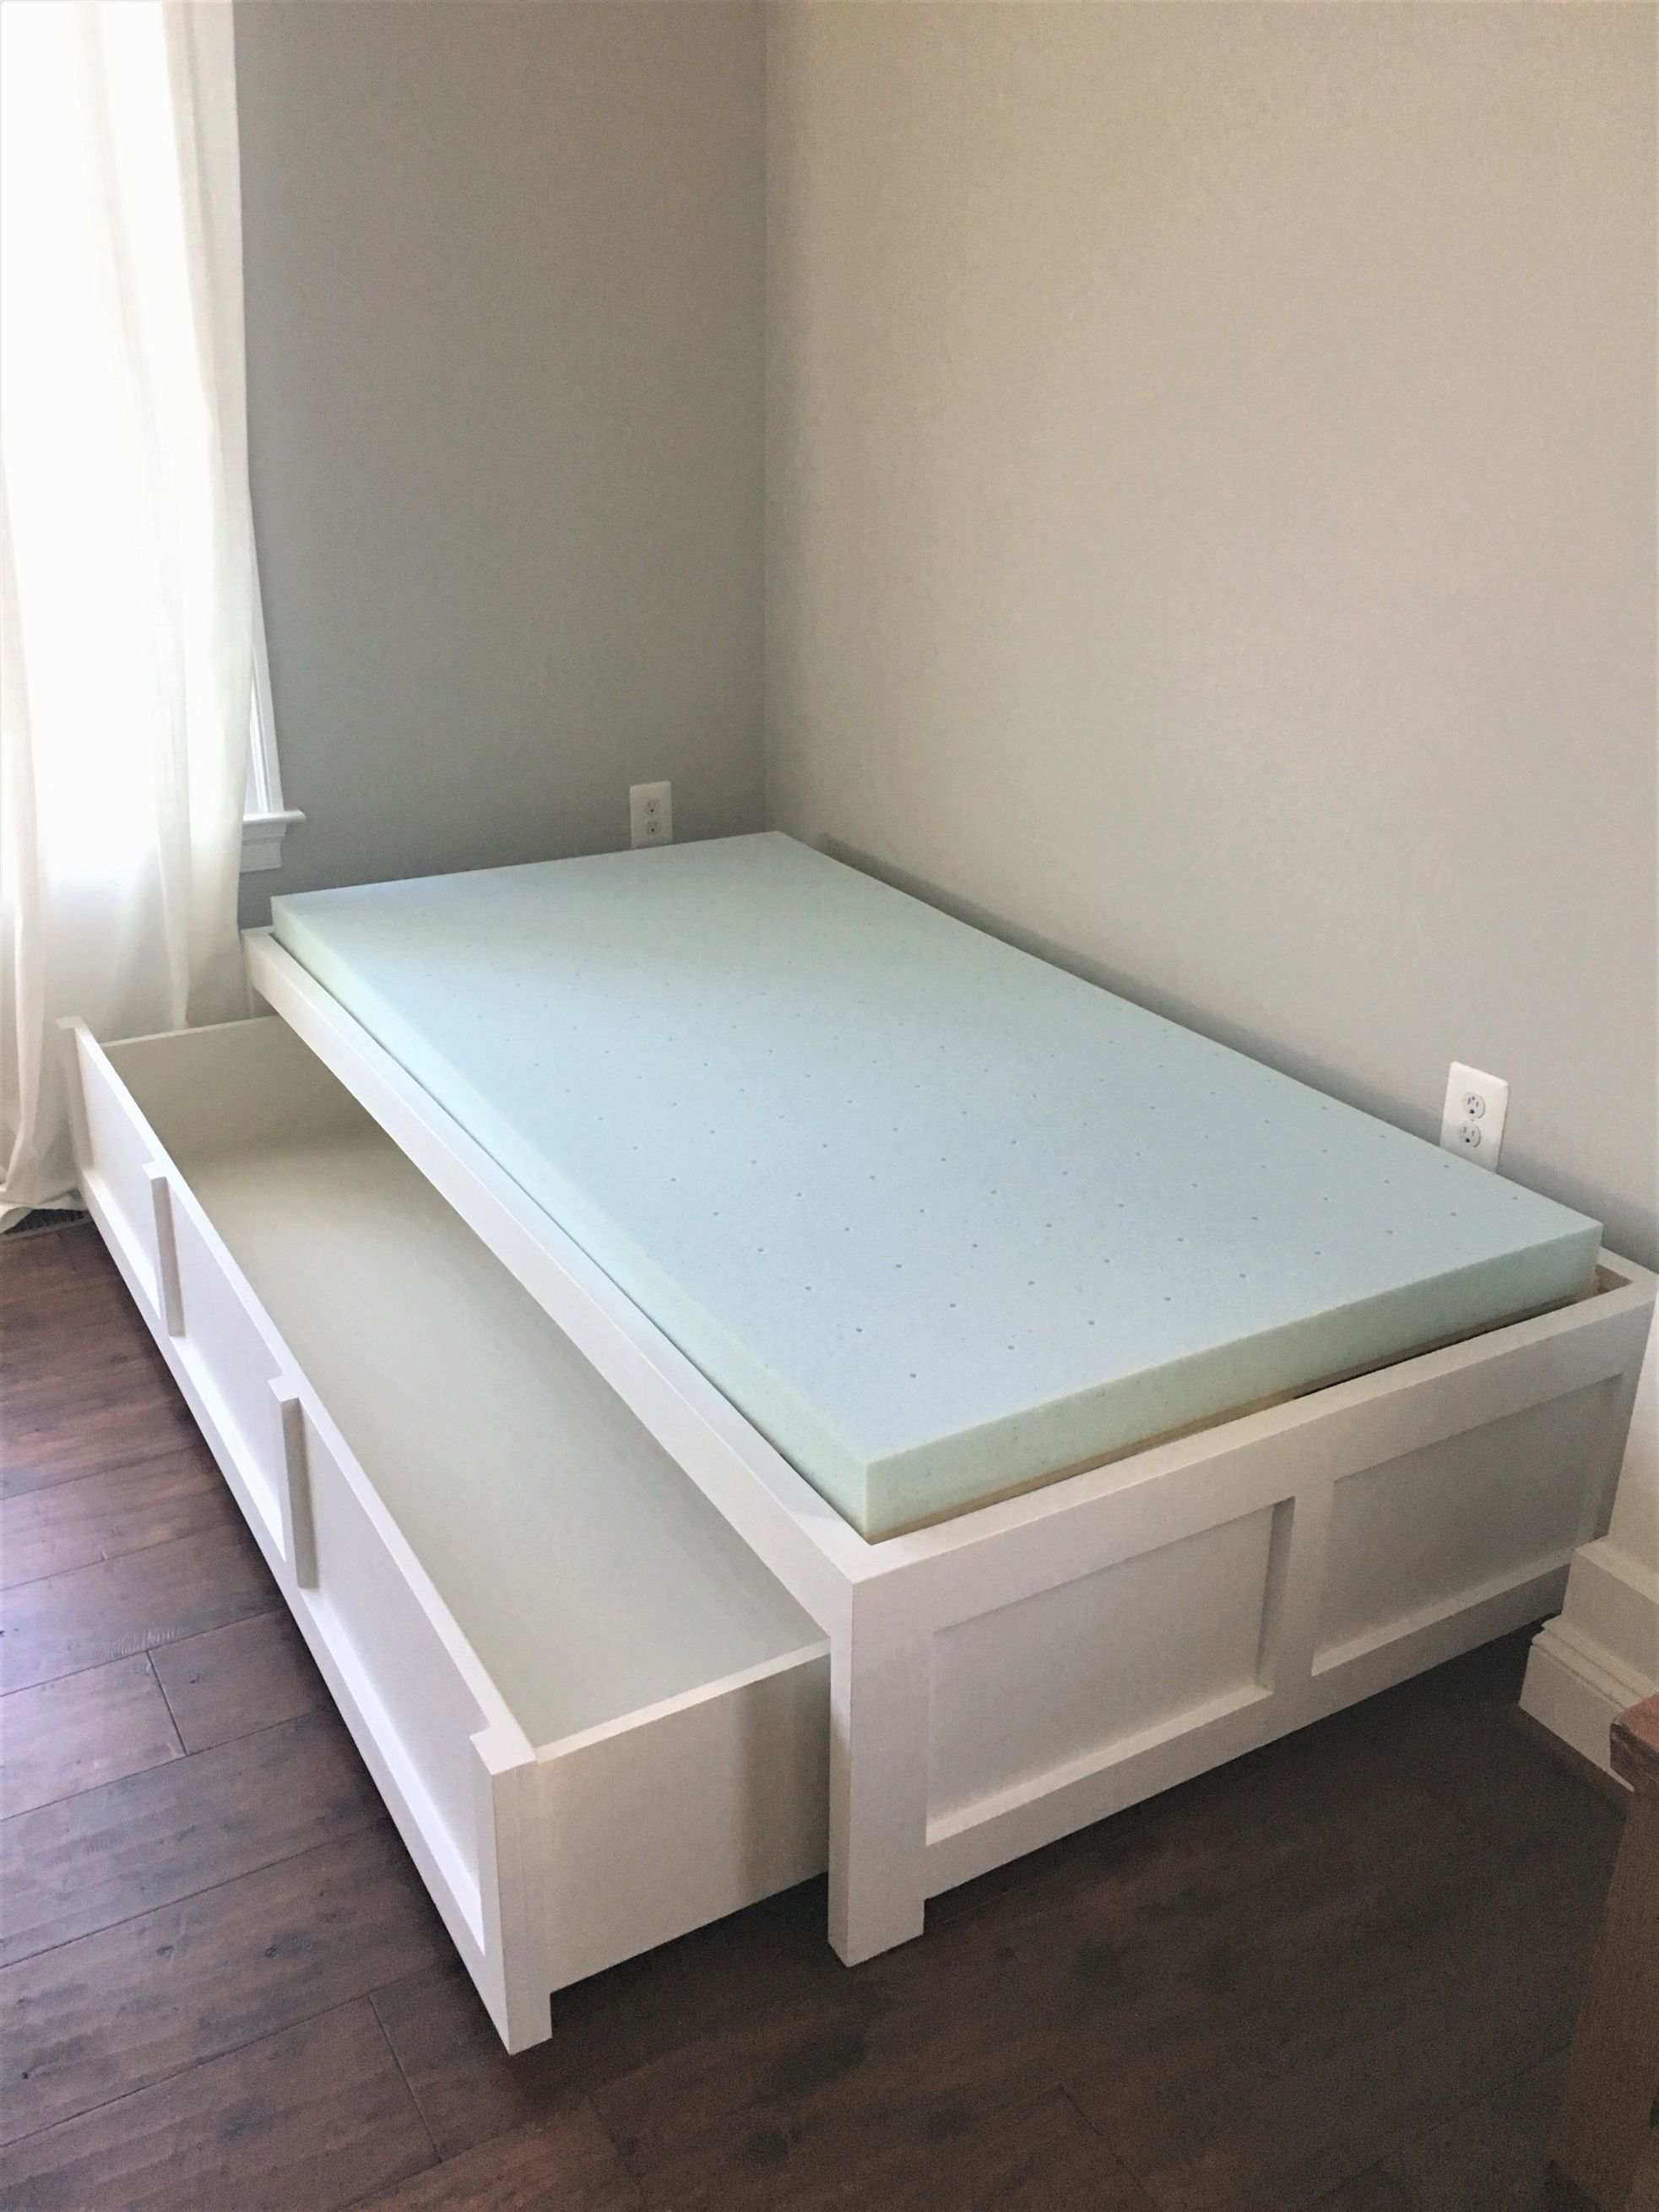 - Ana White Daybed With Storage - DIY Projects #KidsFurniture